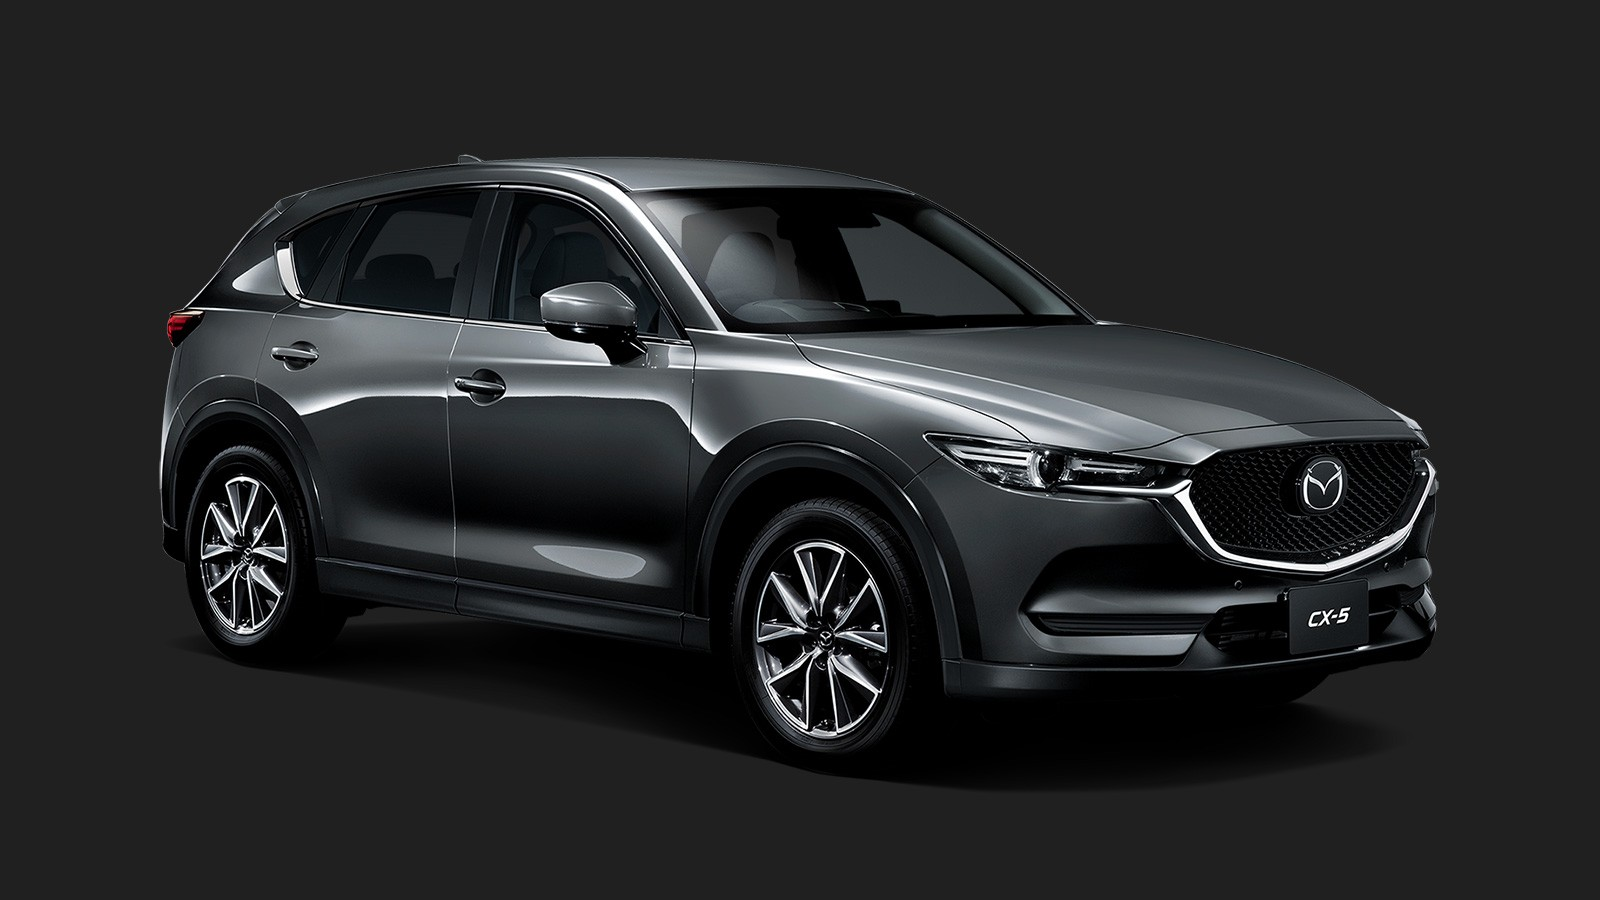 2017 mazda cx 5 specifications and prices revealed for japan autoevolution. Black Bedroom Furniture Sets. Home Design Ideas